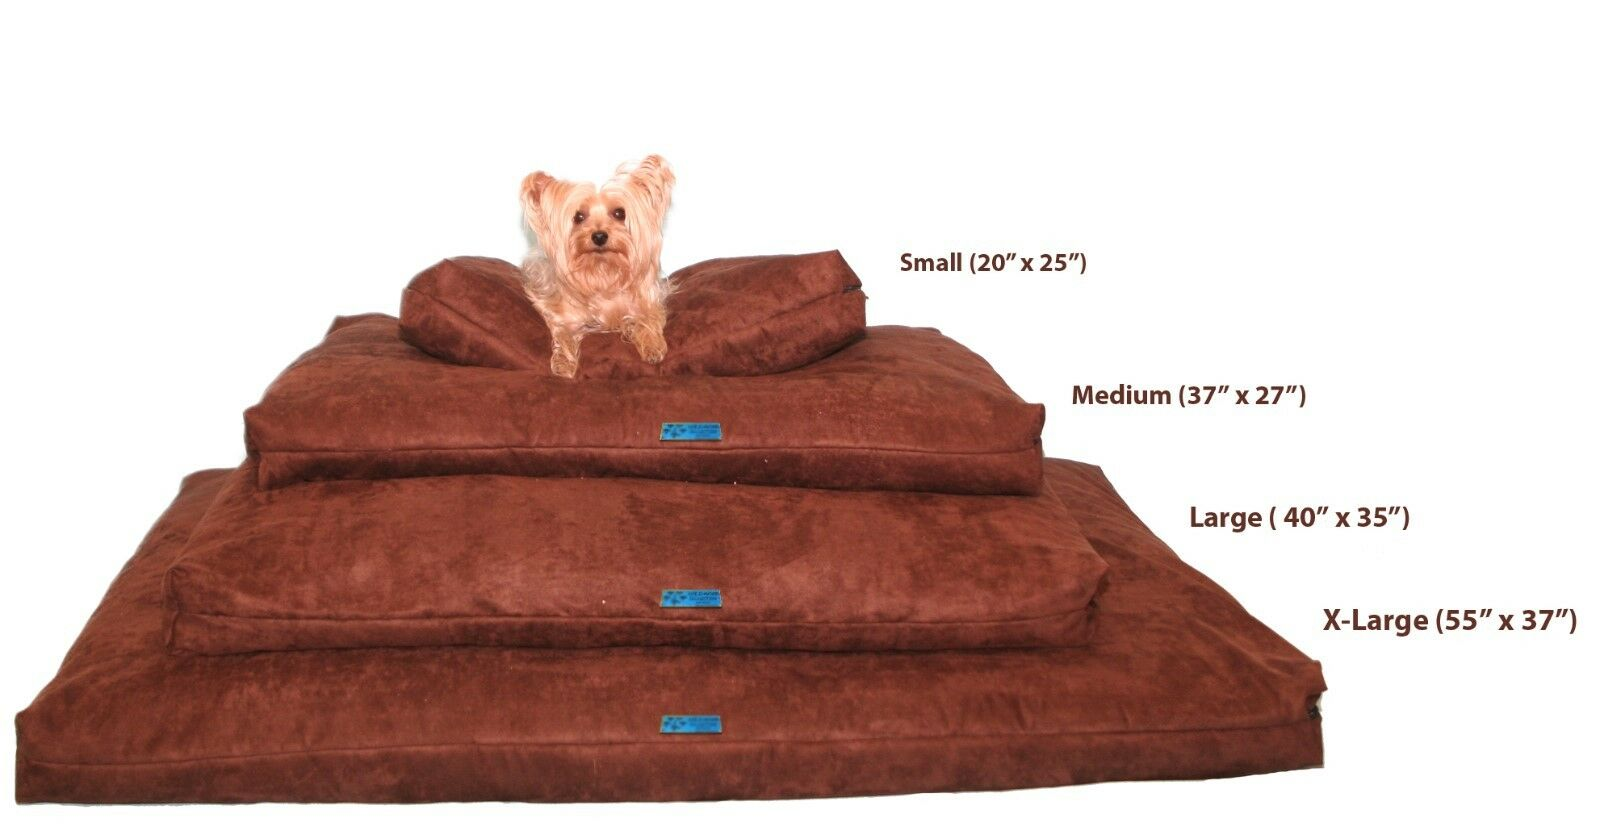 Shredded Memory Foam Orthopedic Dog bed for Large Breed Dogs,40 Dogs,40 Dogs,40 x35 ,Marronee 97fbdf